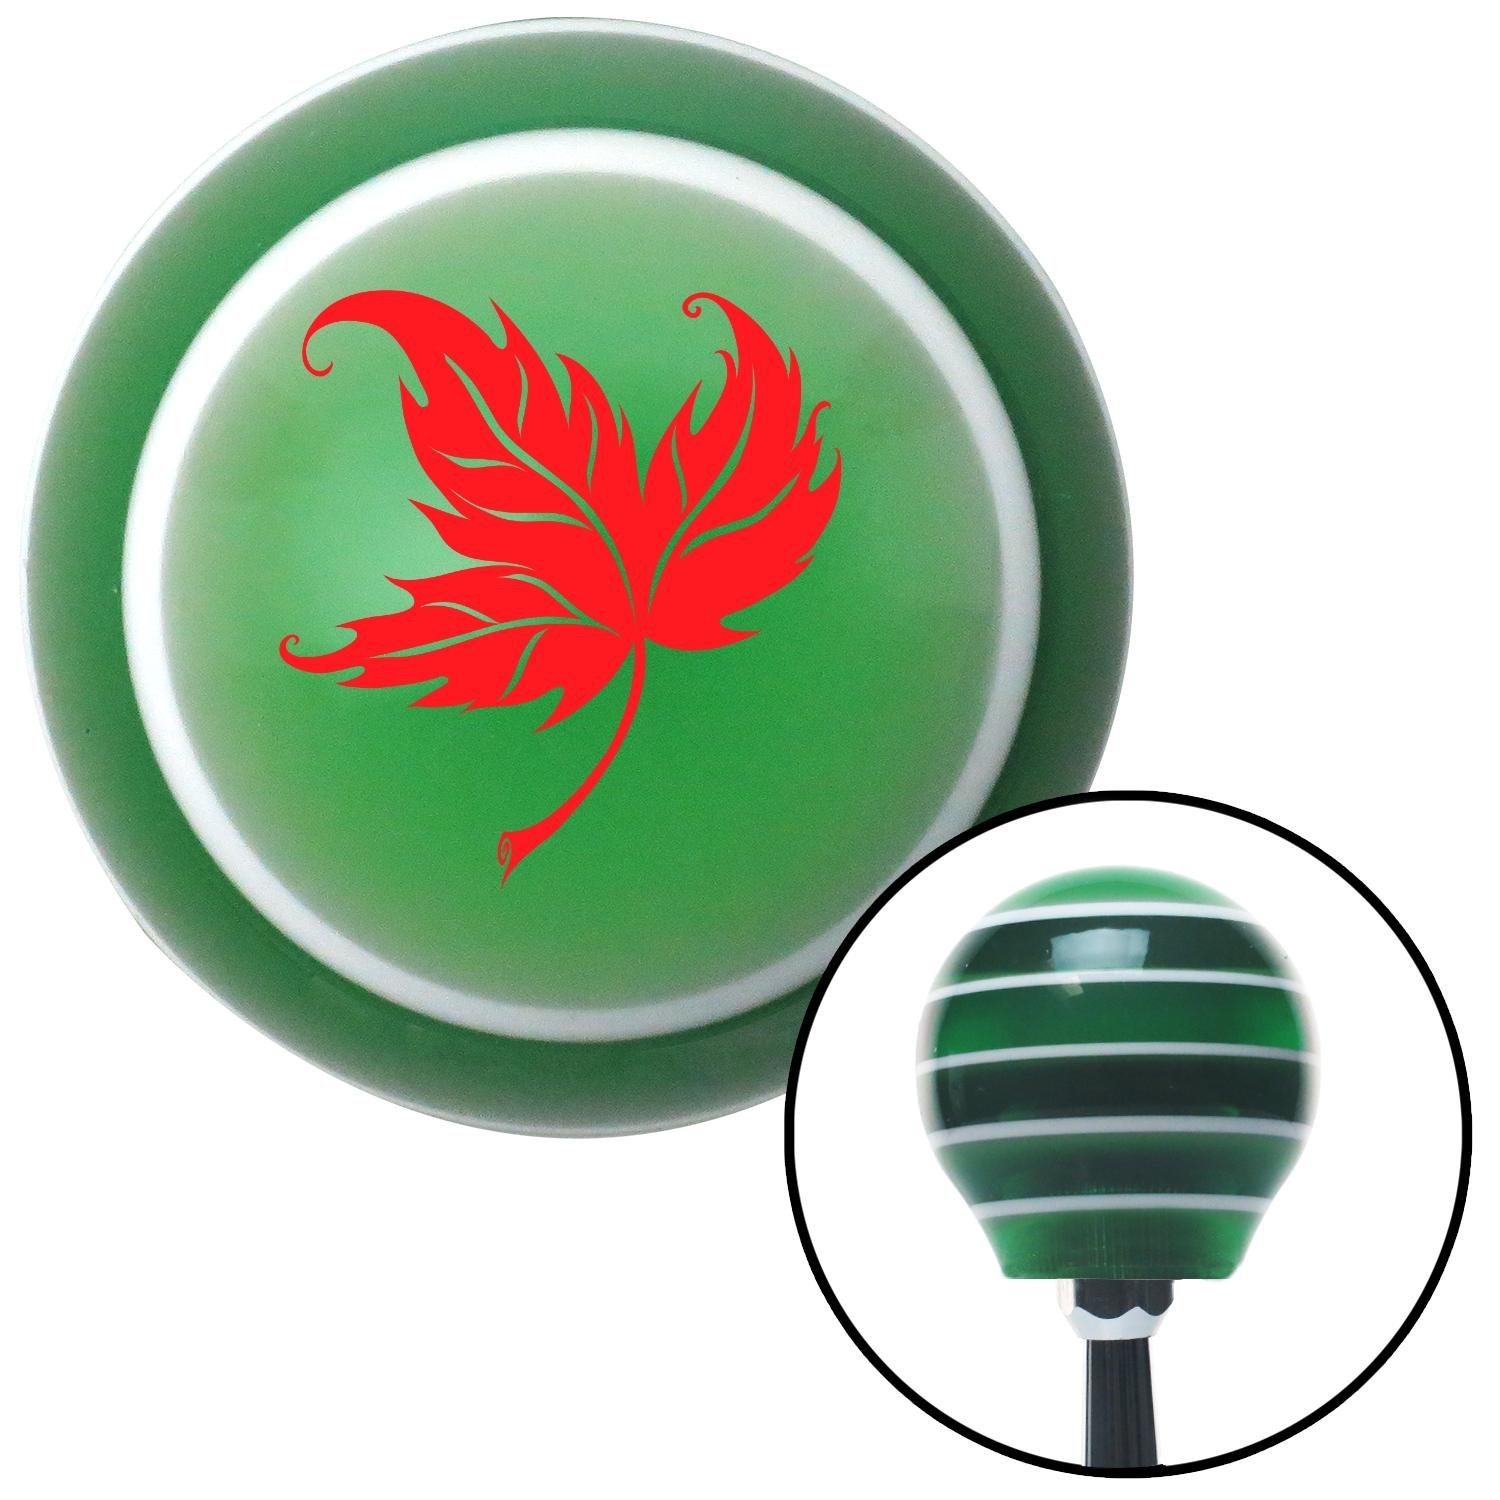 Red Falling Leaf American Shifter 125681 Green Stripe Shift Knob with M16 x 1.5 Insert